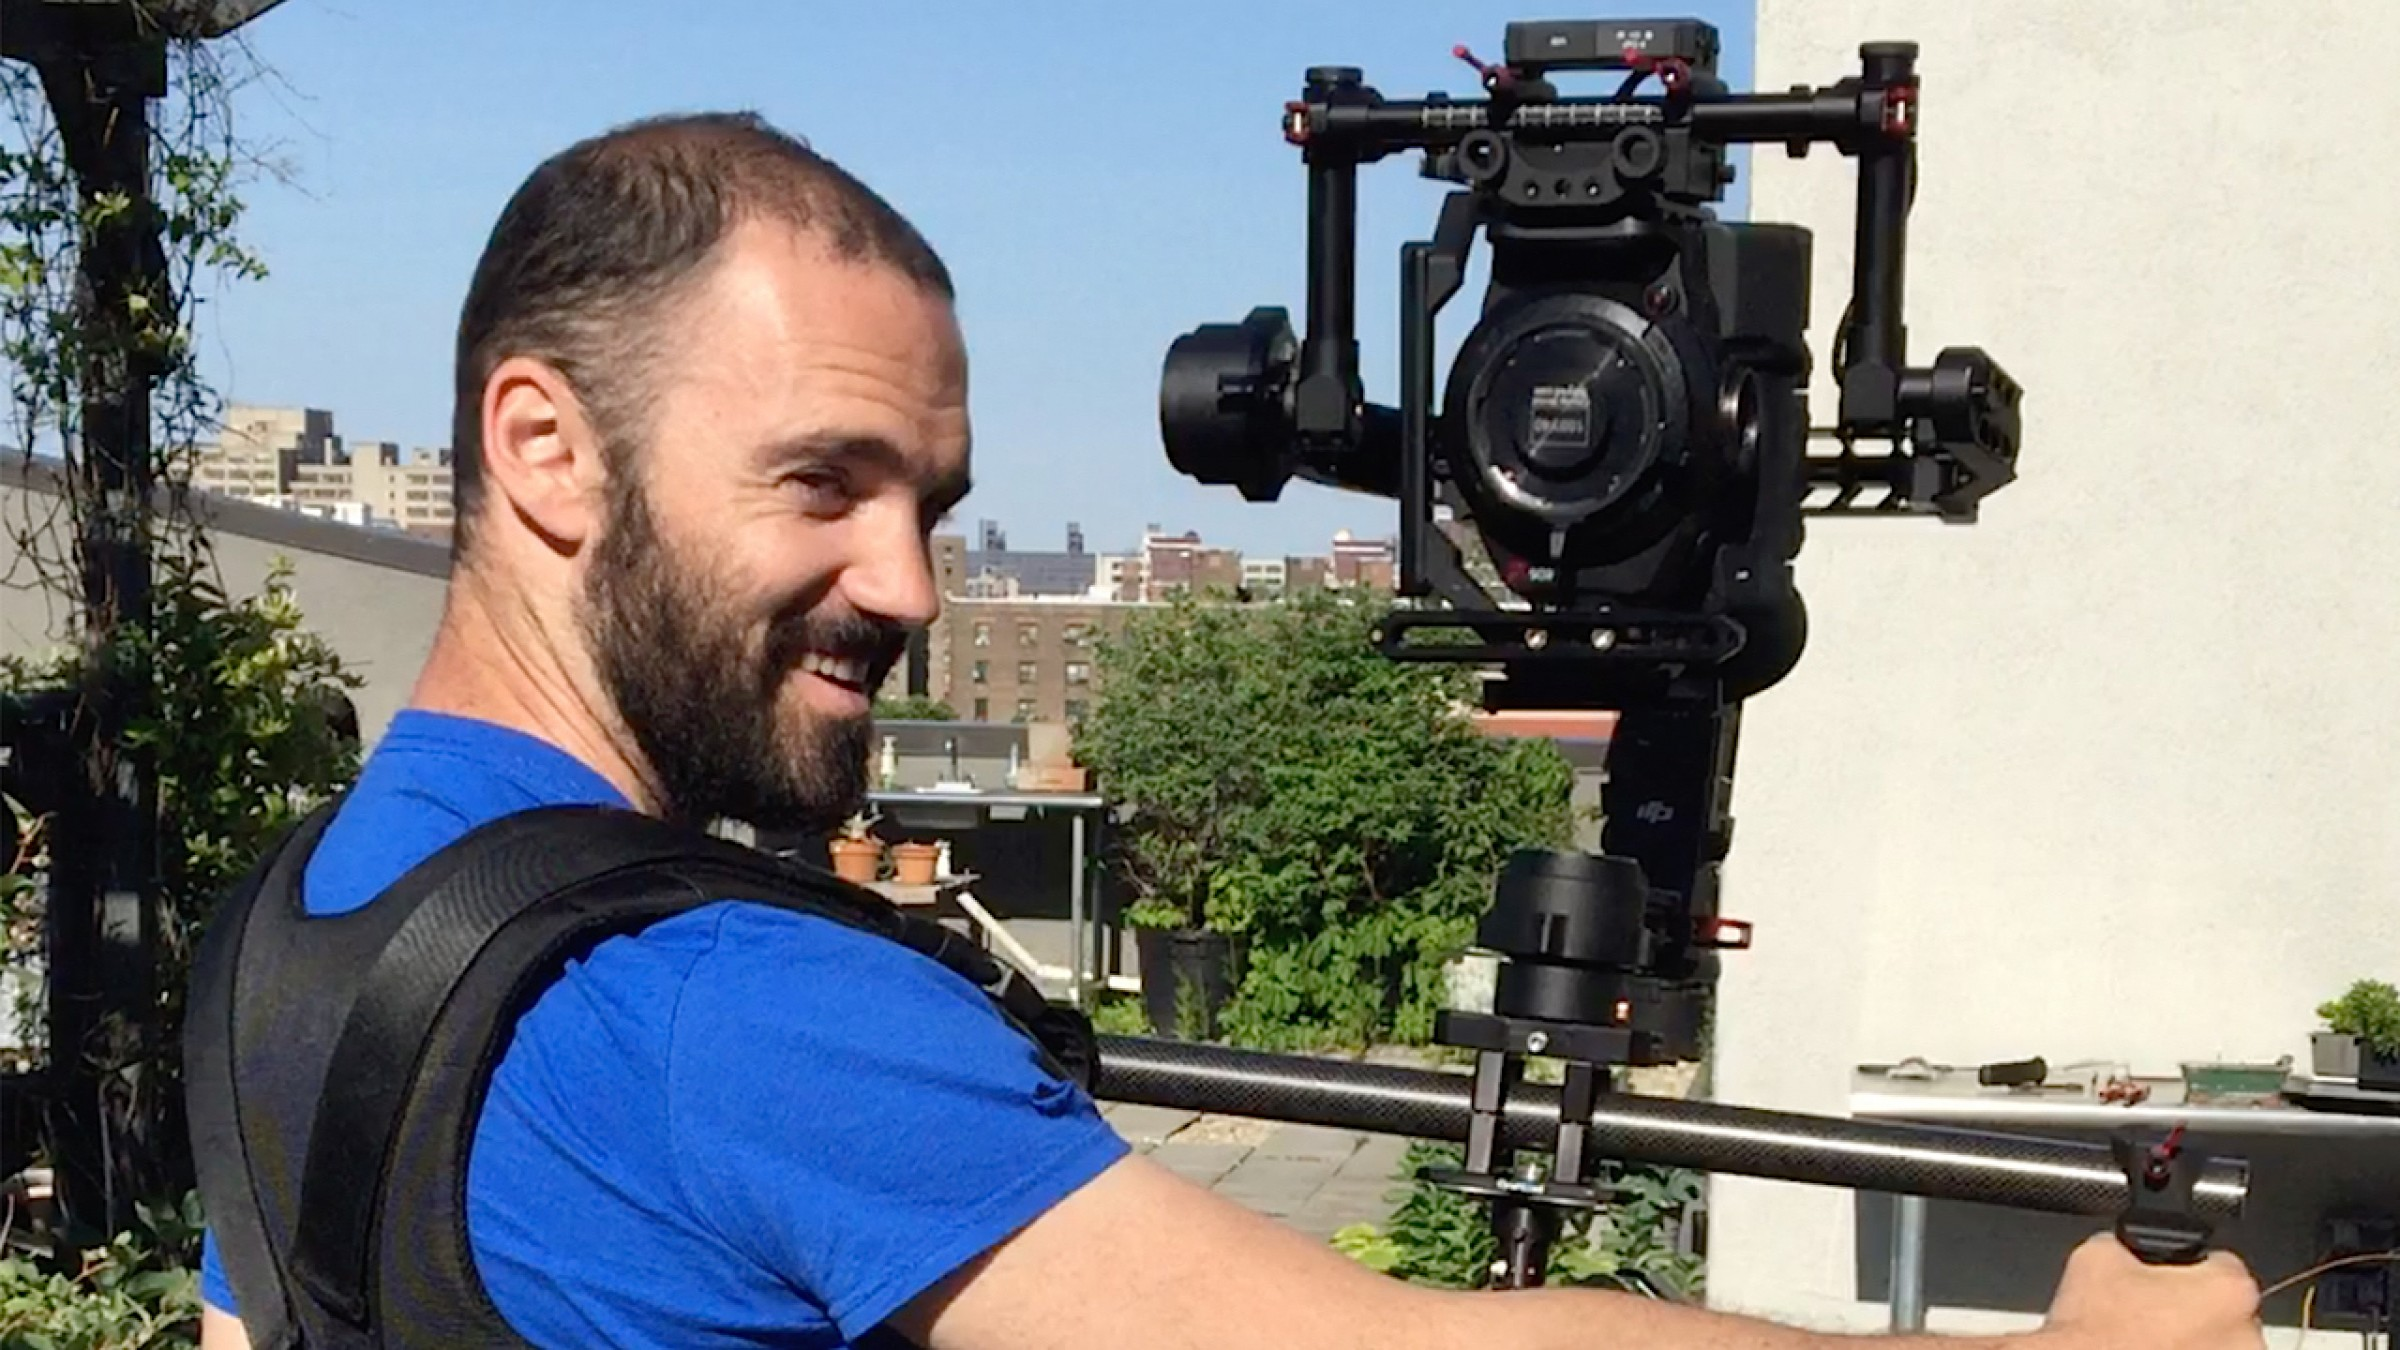 How to Film Over Your Shoulder for Hours With a DJI Ronin Gimbal